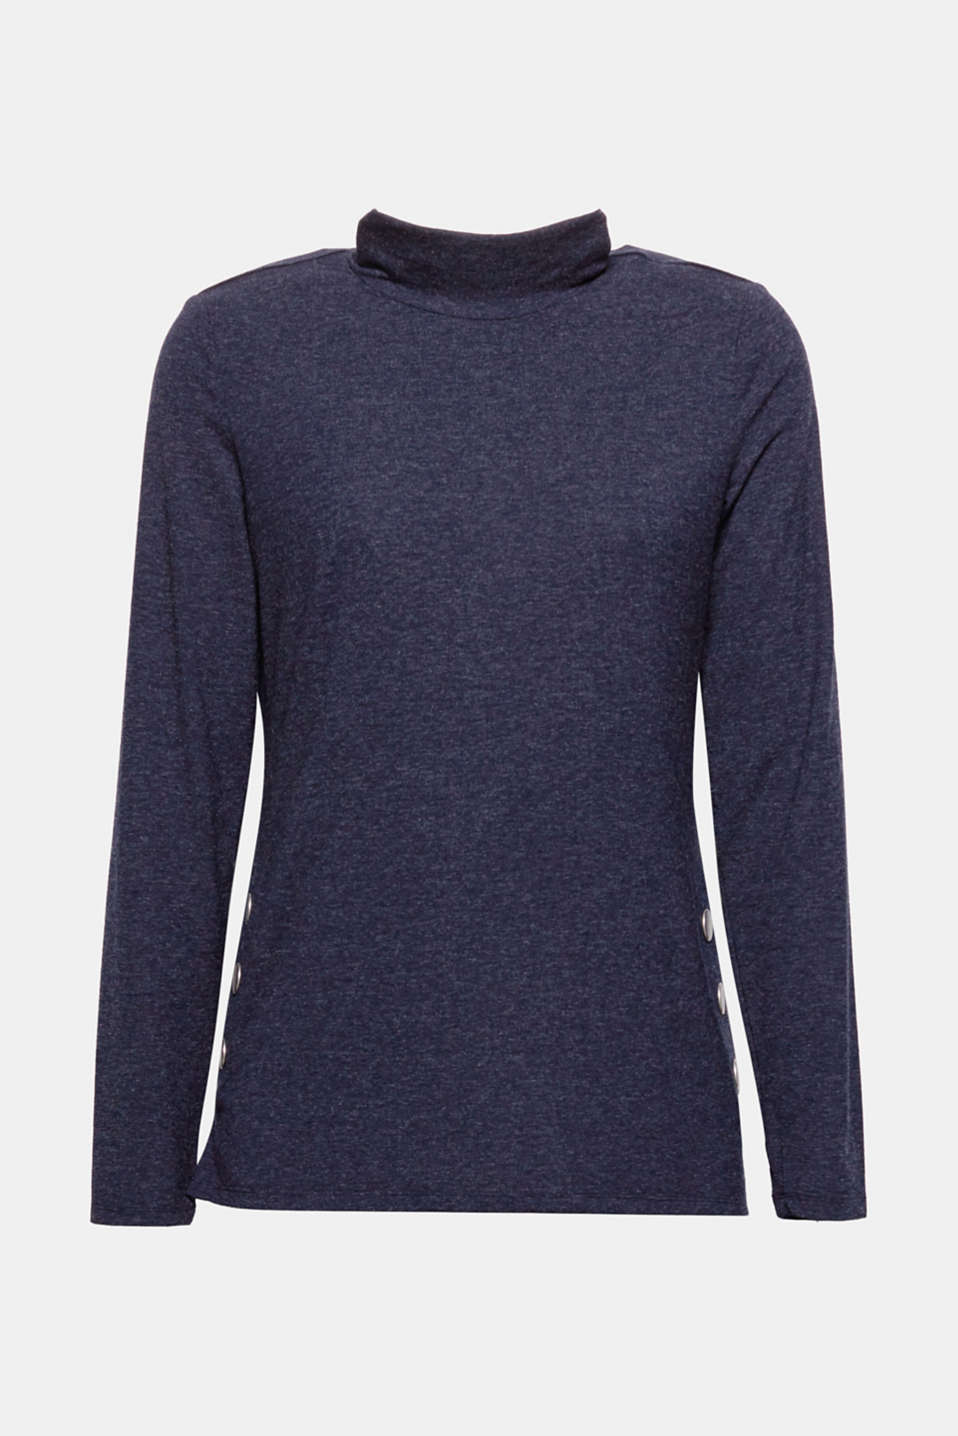 A basic with cool fashion appeal: melange long sleeve top in jersey with a turtleneck